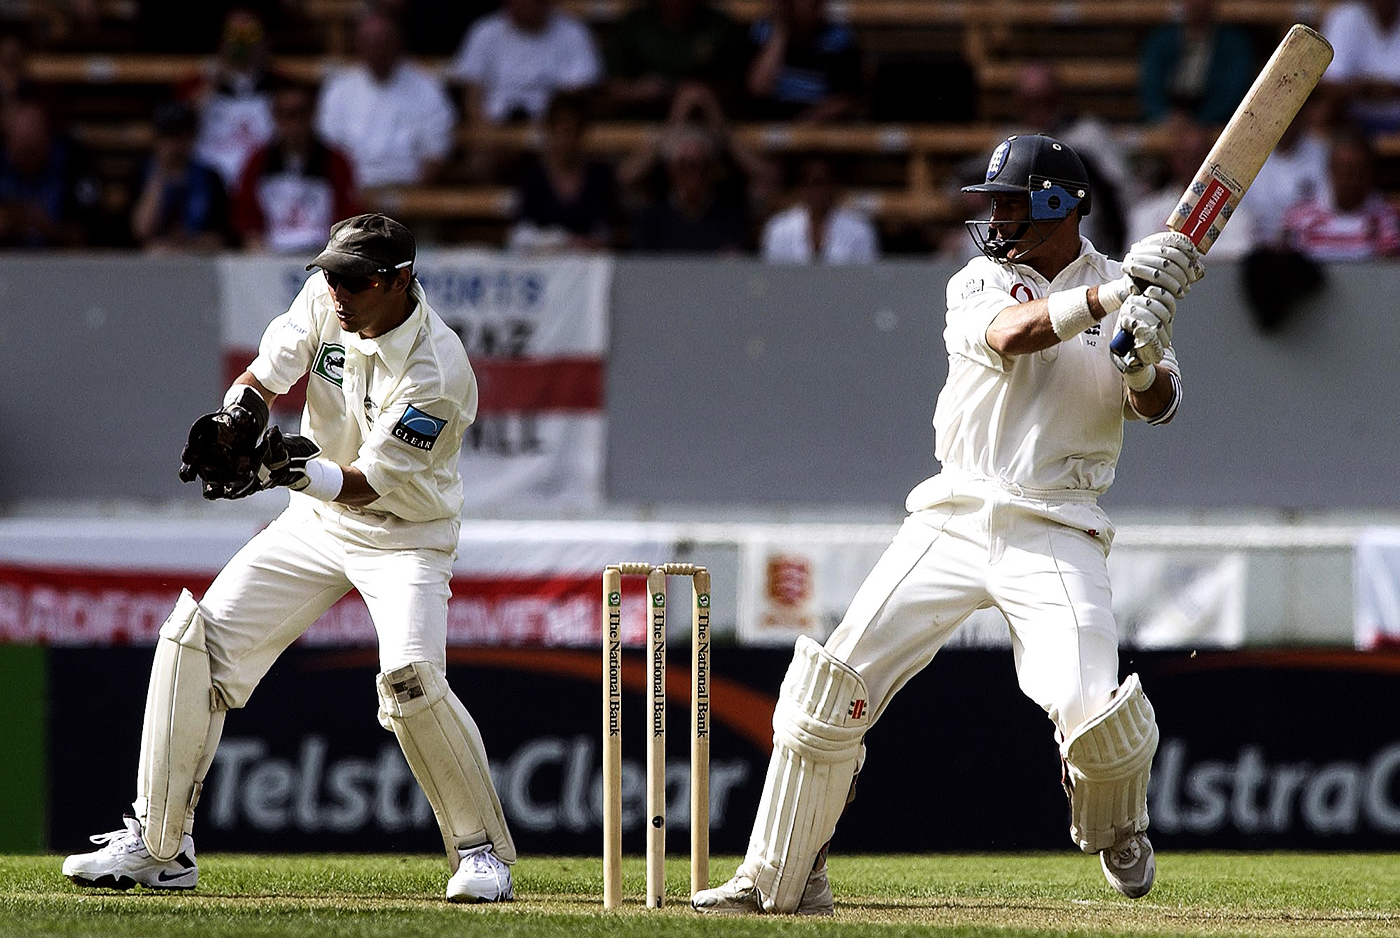 Nasser Hussain's 106, scored on day one under challenging conditions on a green pitch, was instrumental in England gaining the upper hand in the game